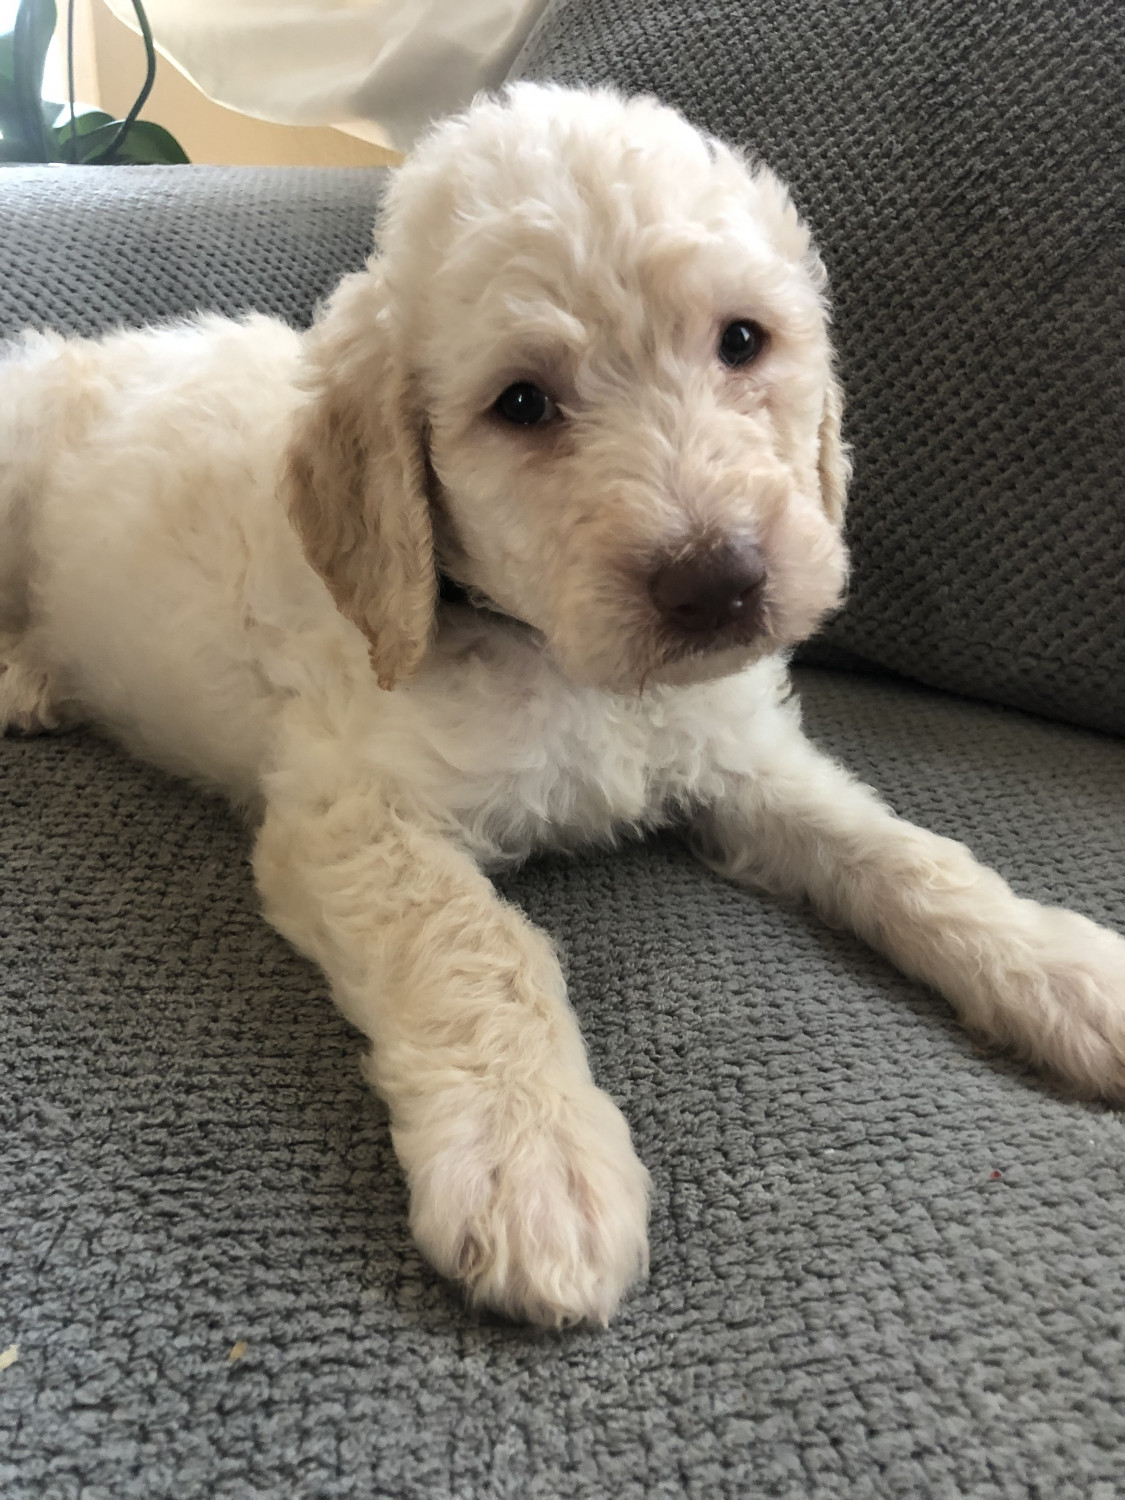 Poodle Puppies For Sale Vancouver Wa 302876 Petzlover